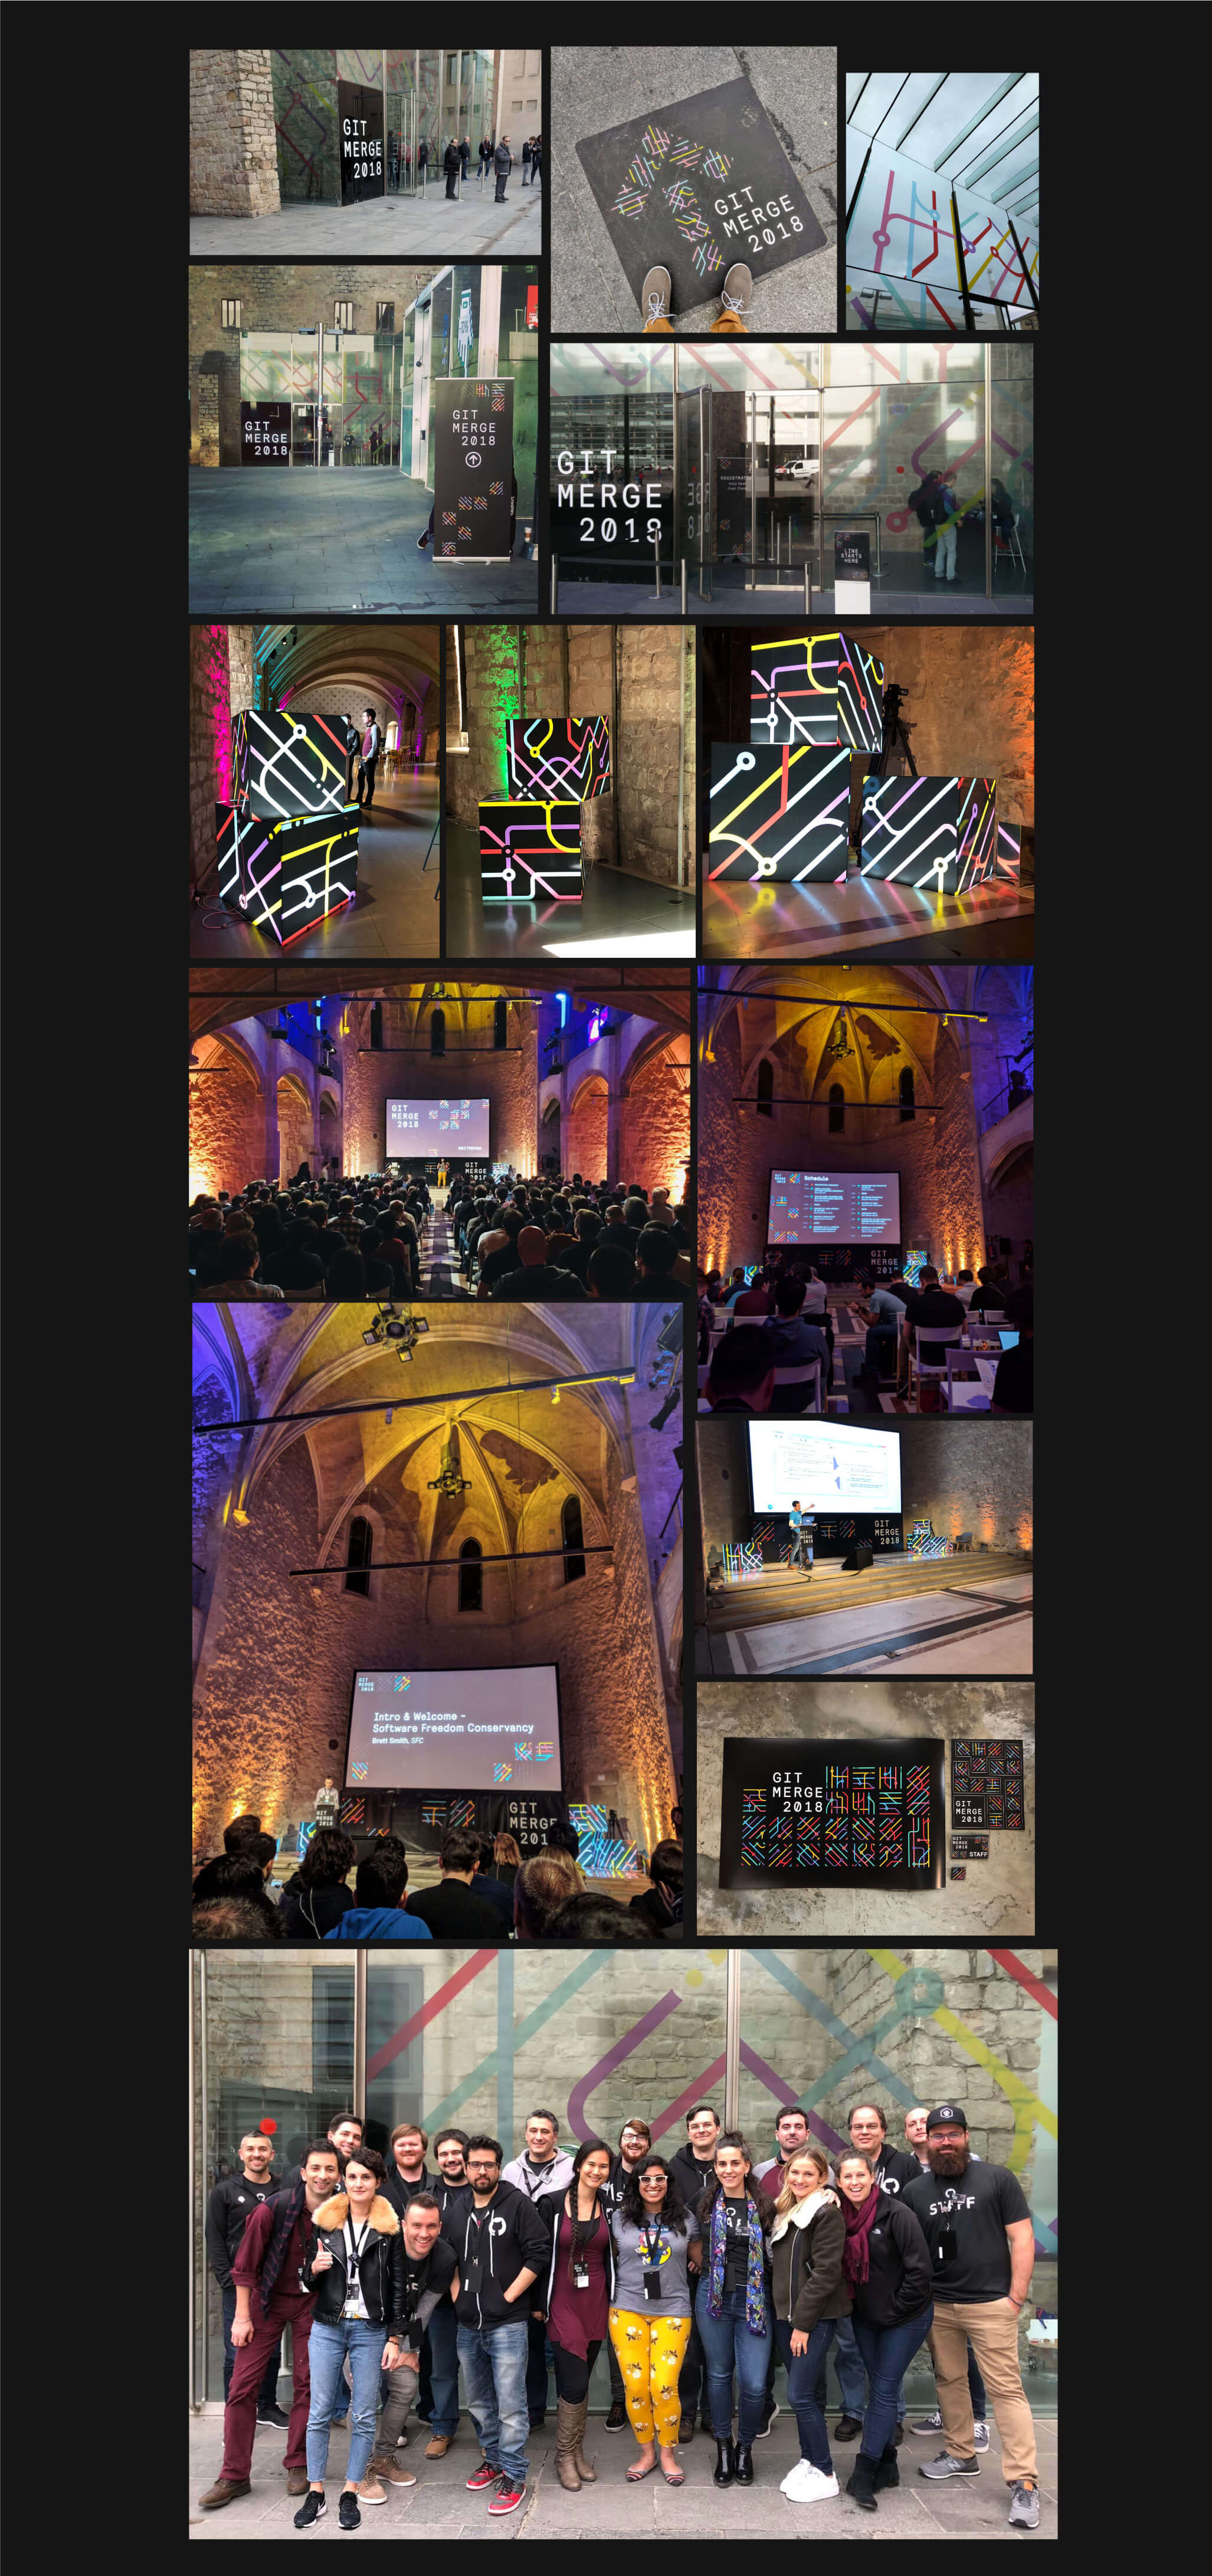 gitmerge collage of conference photos